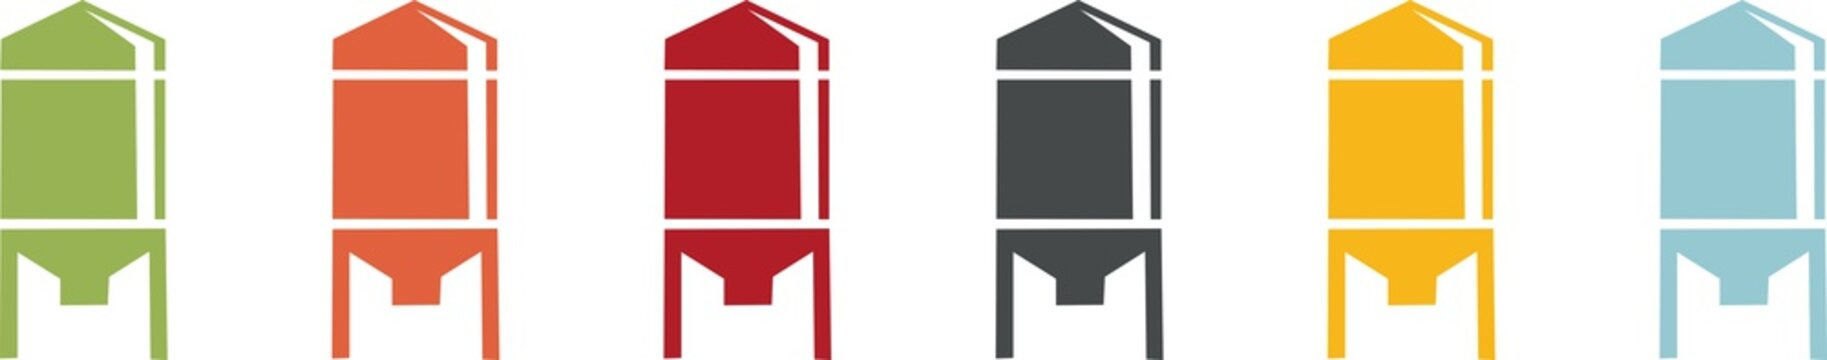 Coloured icons of grain silos for agriculture